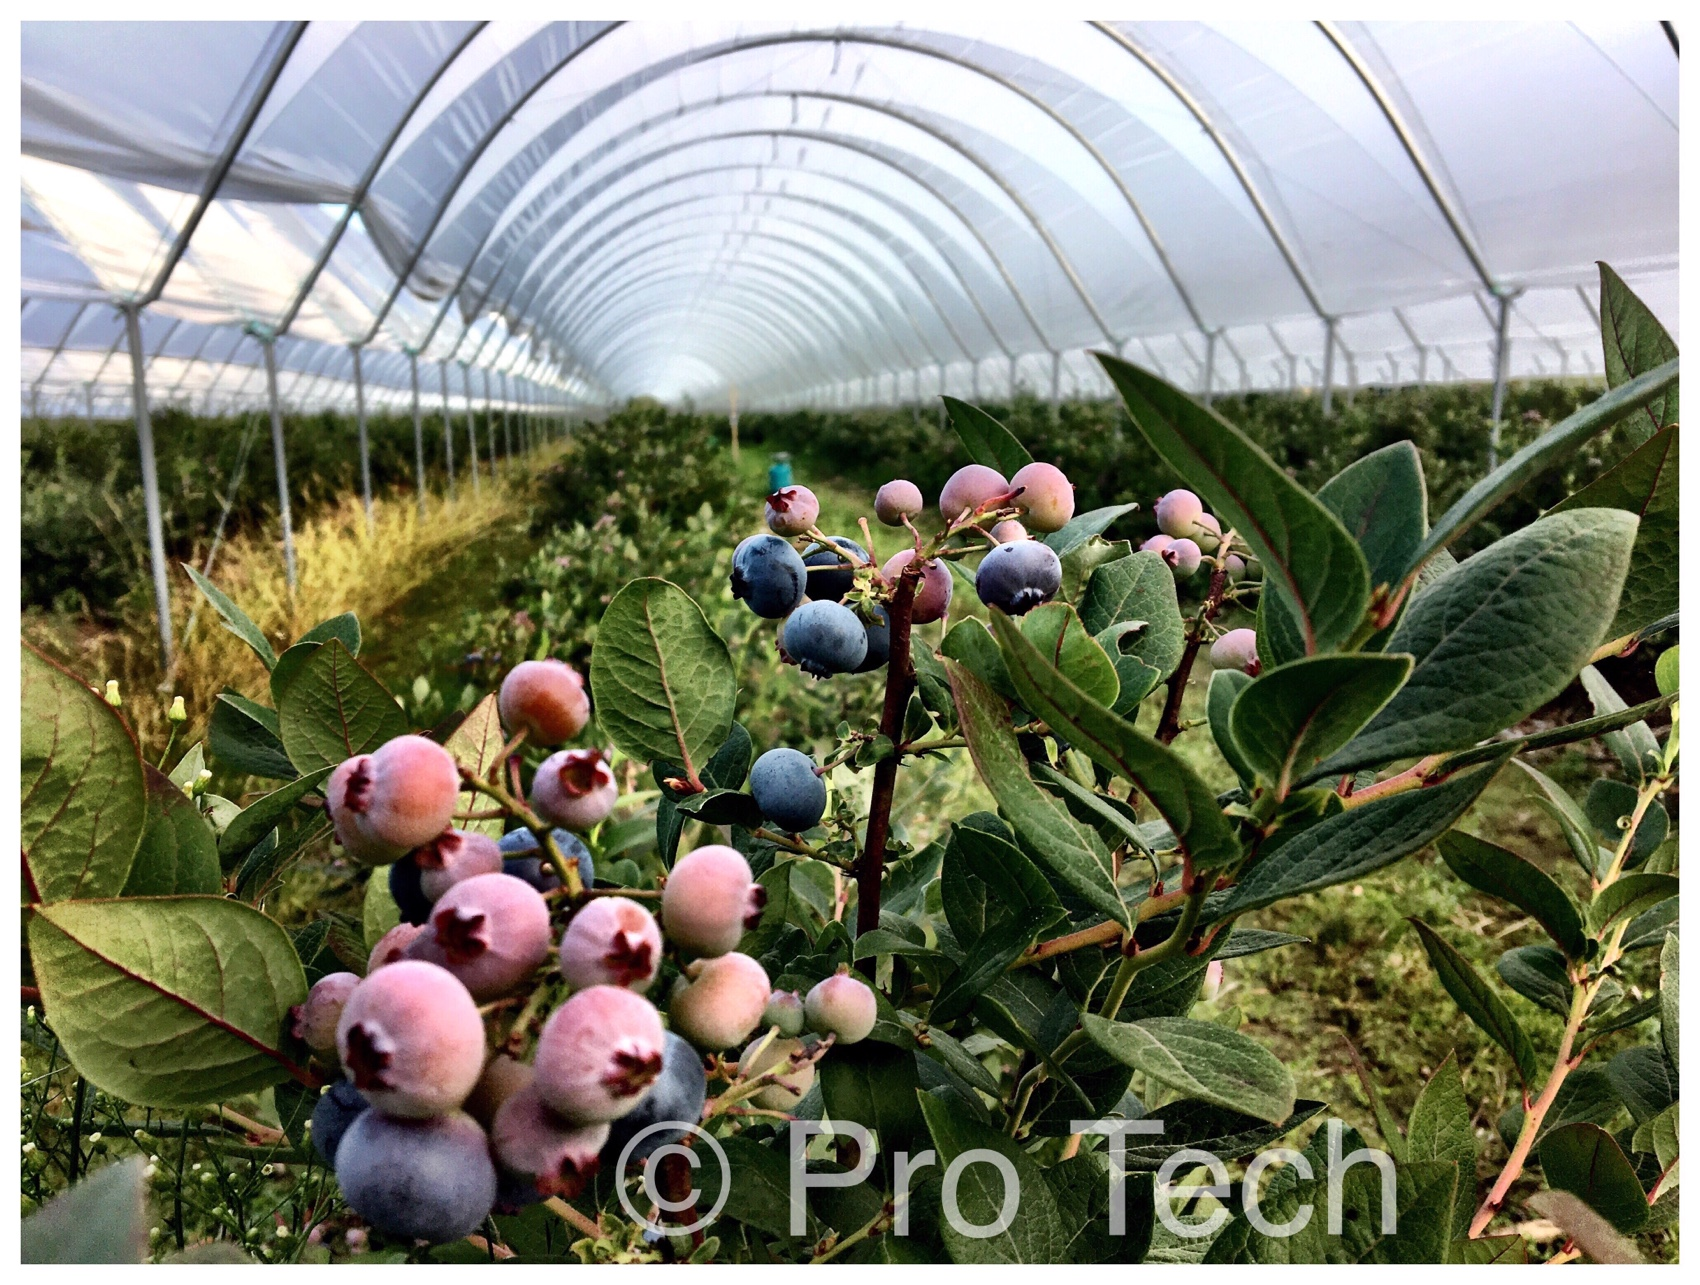 Blueberries polytunnels, Protech Future, agricultural polythene